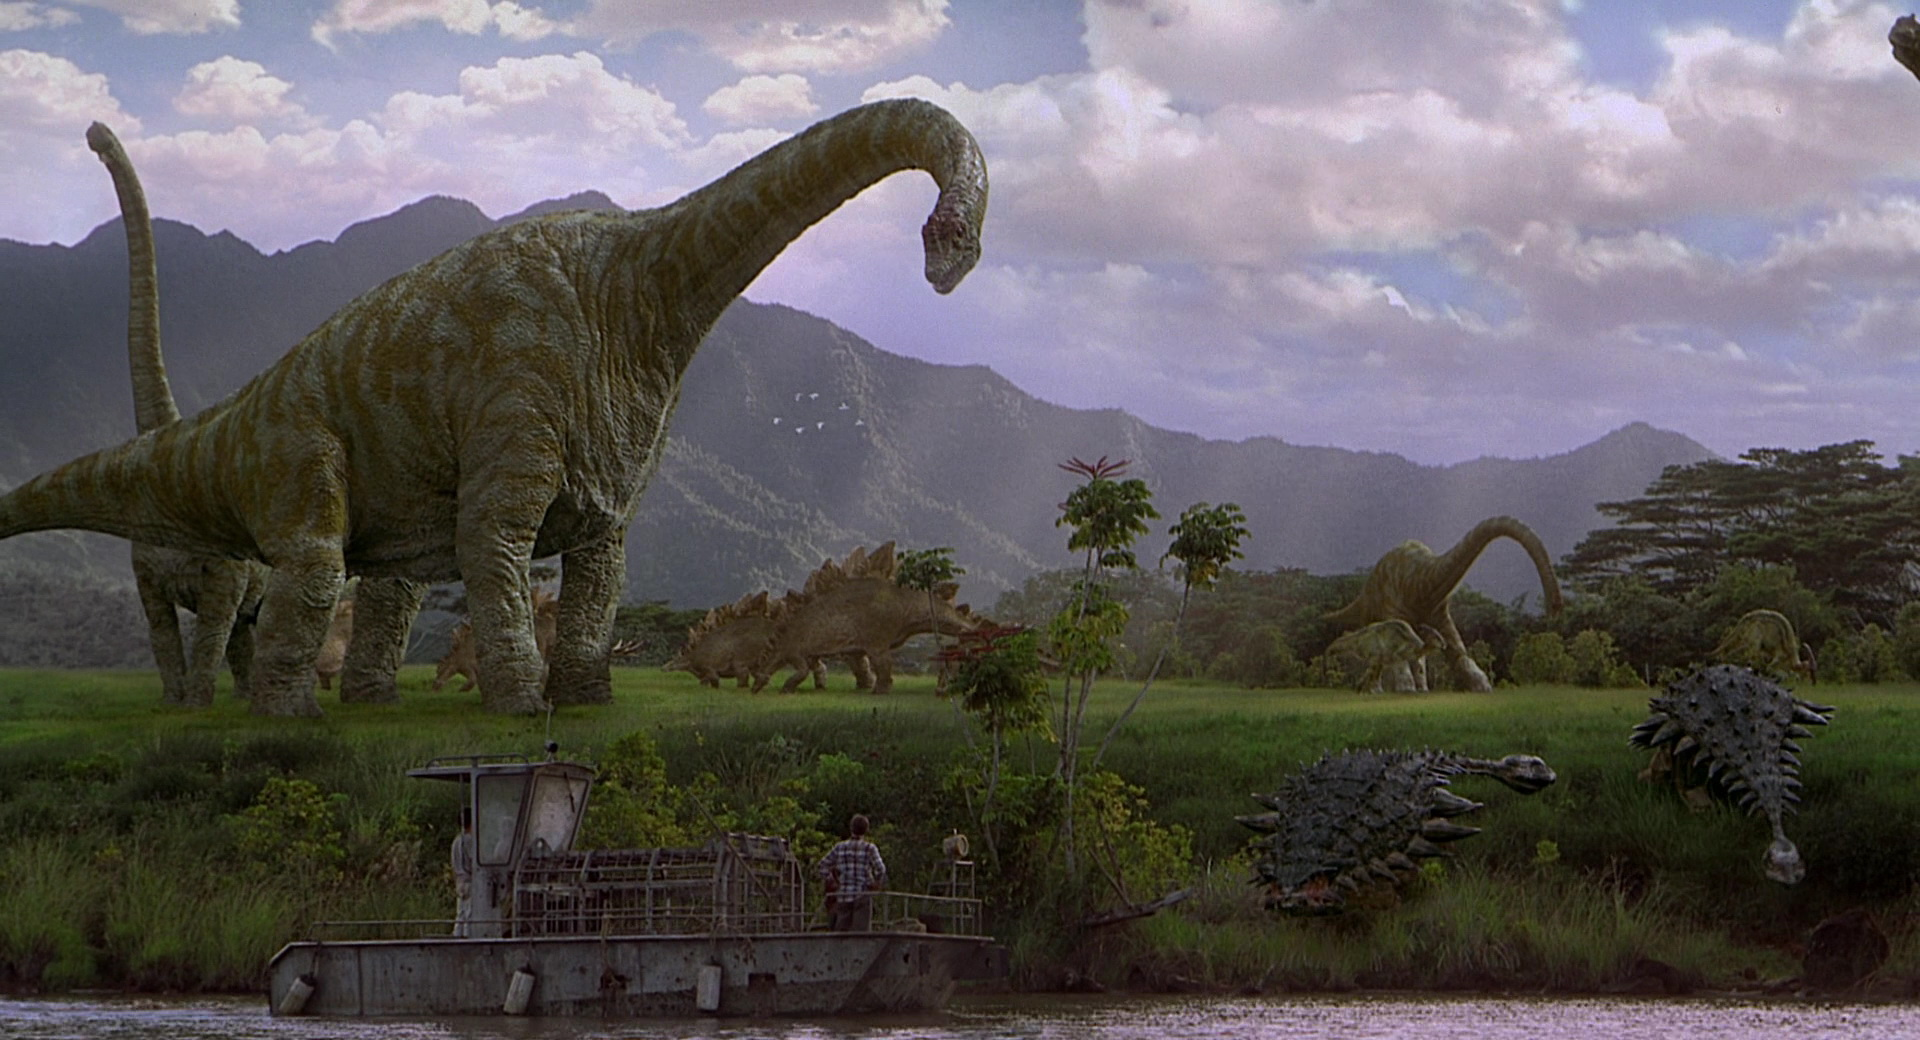 jurassic period The name jurassic conjures images of tremendous dinosaurs roaming the earth in fact, during this period, dinosaur species became diverse and many grew to extraordinary size.